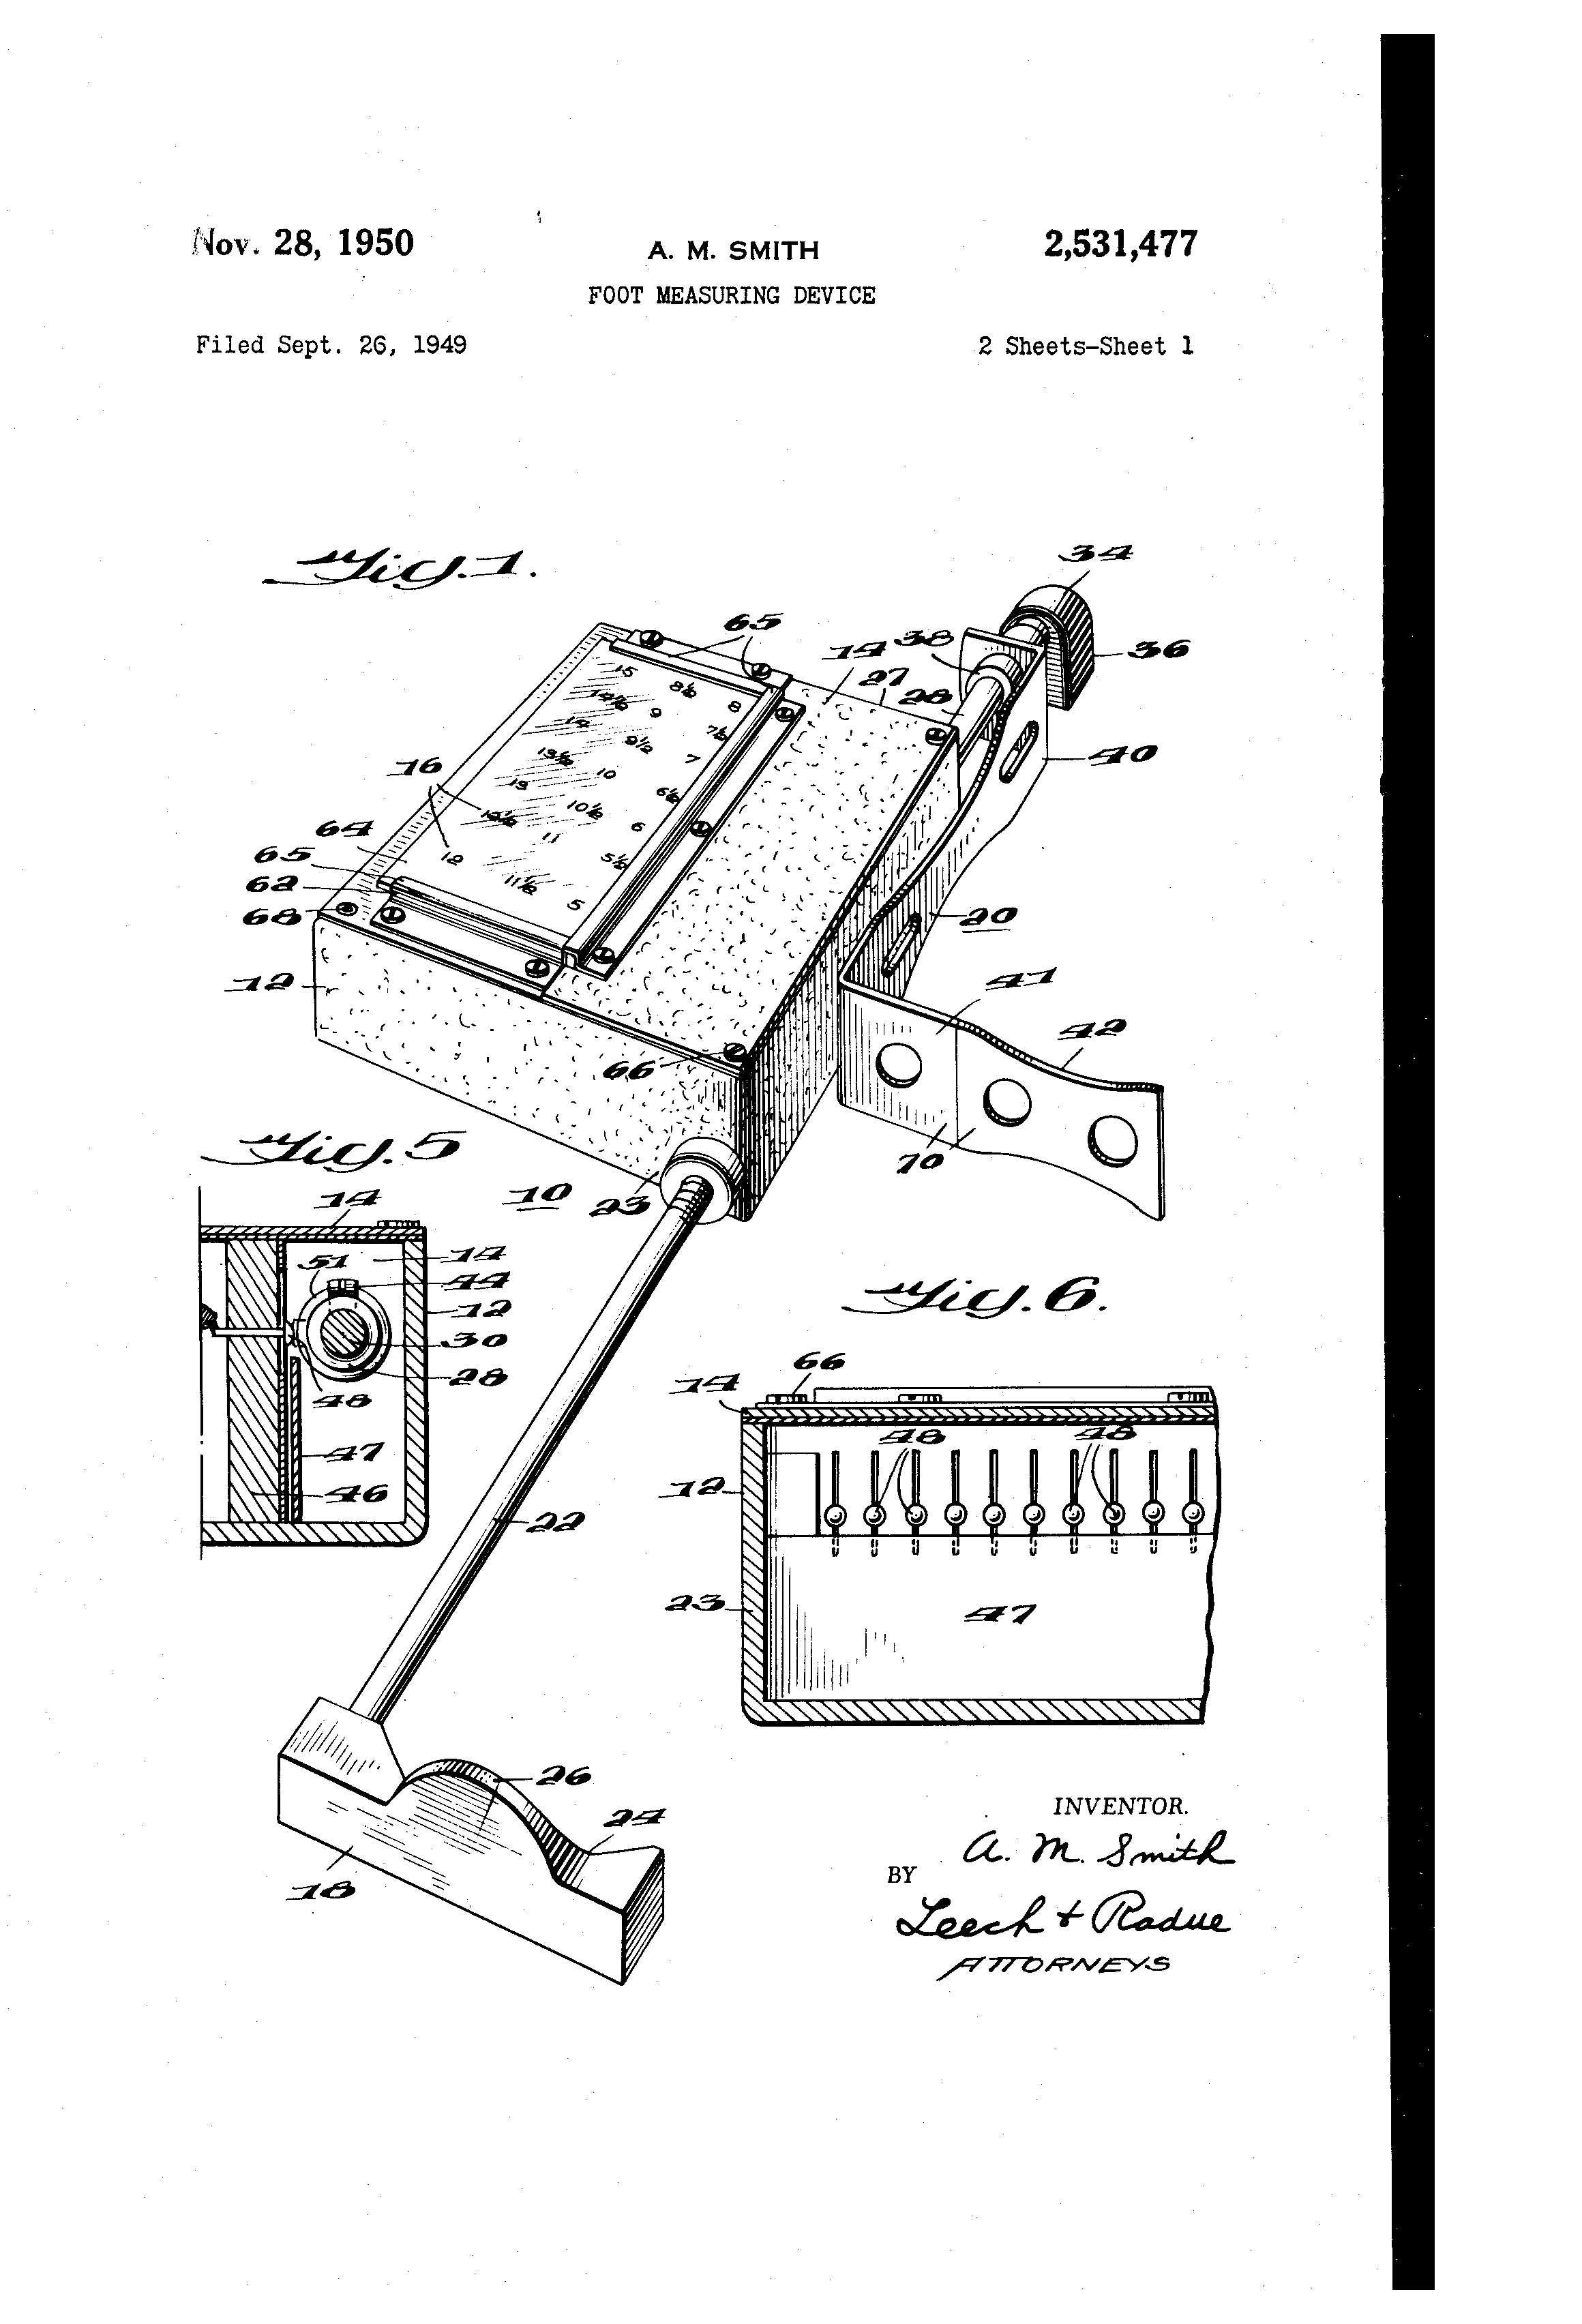 Name Of The Foot Measuring Device : Patent us foot measuring device google patents